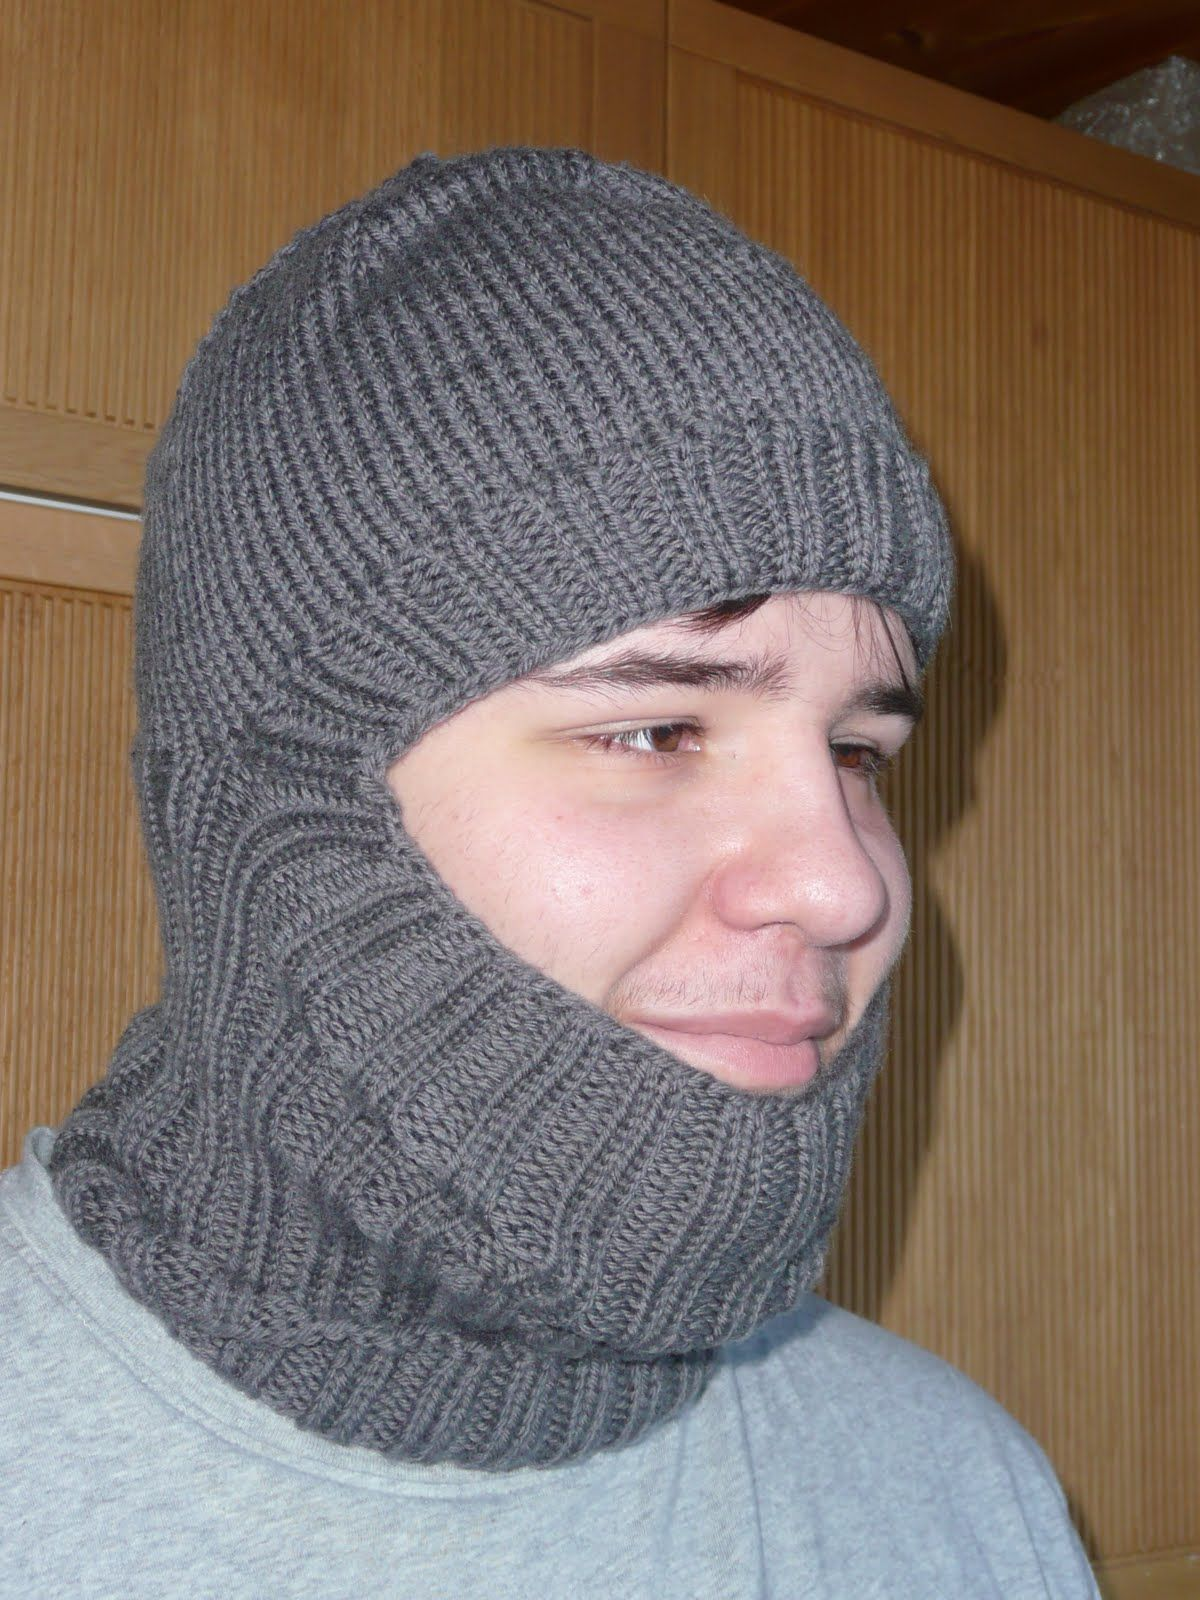 Easy balaclava hat knitting pattern google search clothes easy balaclava hat knitting pattern google search bankloansurffo Images